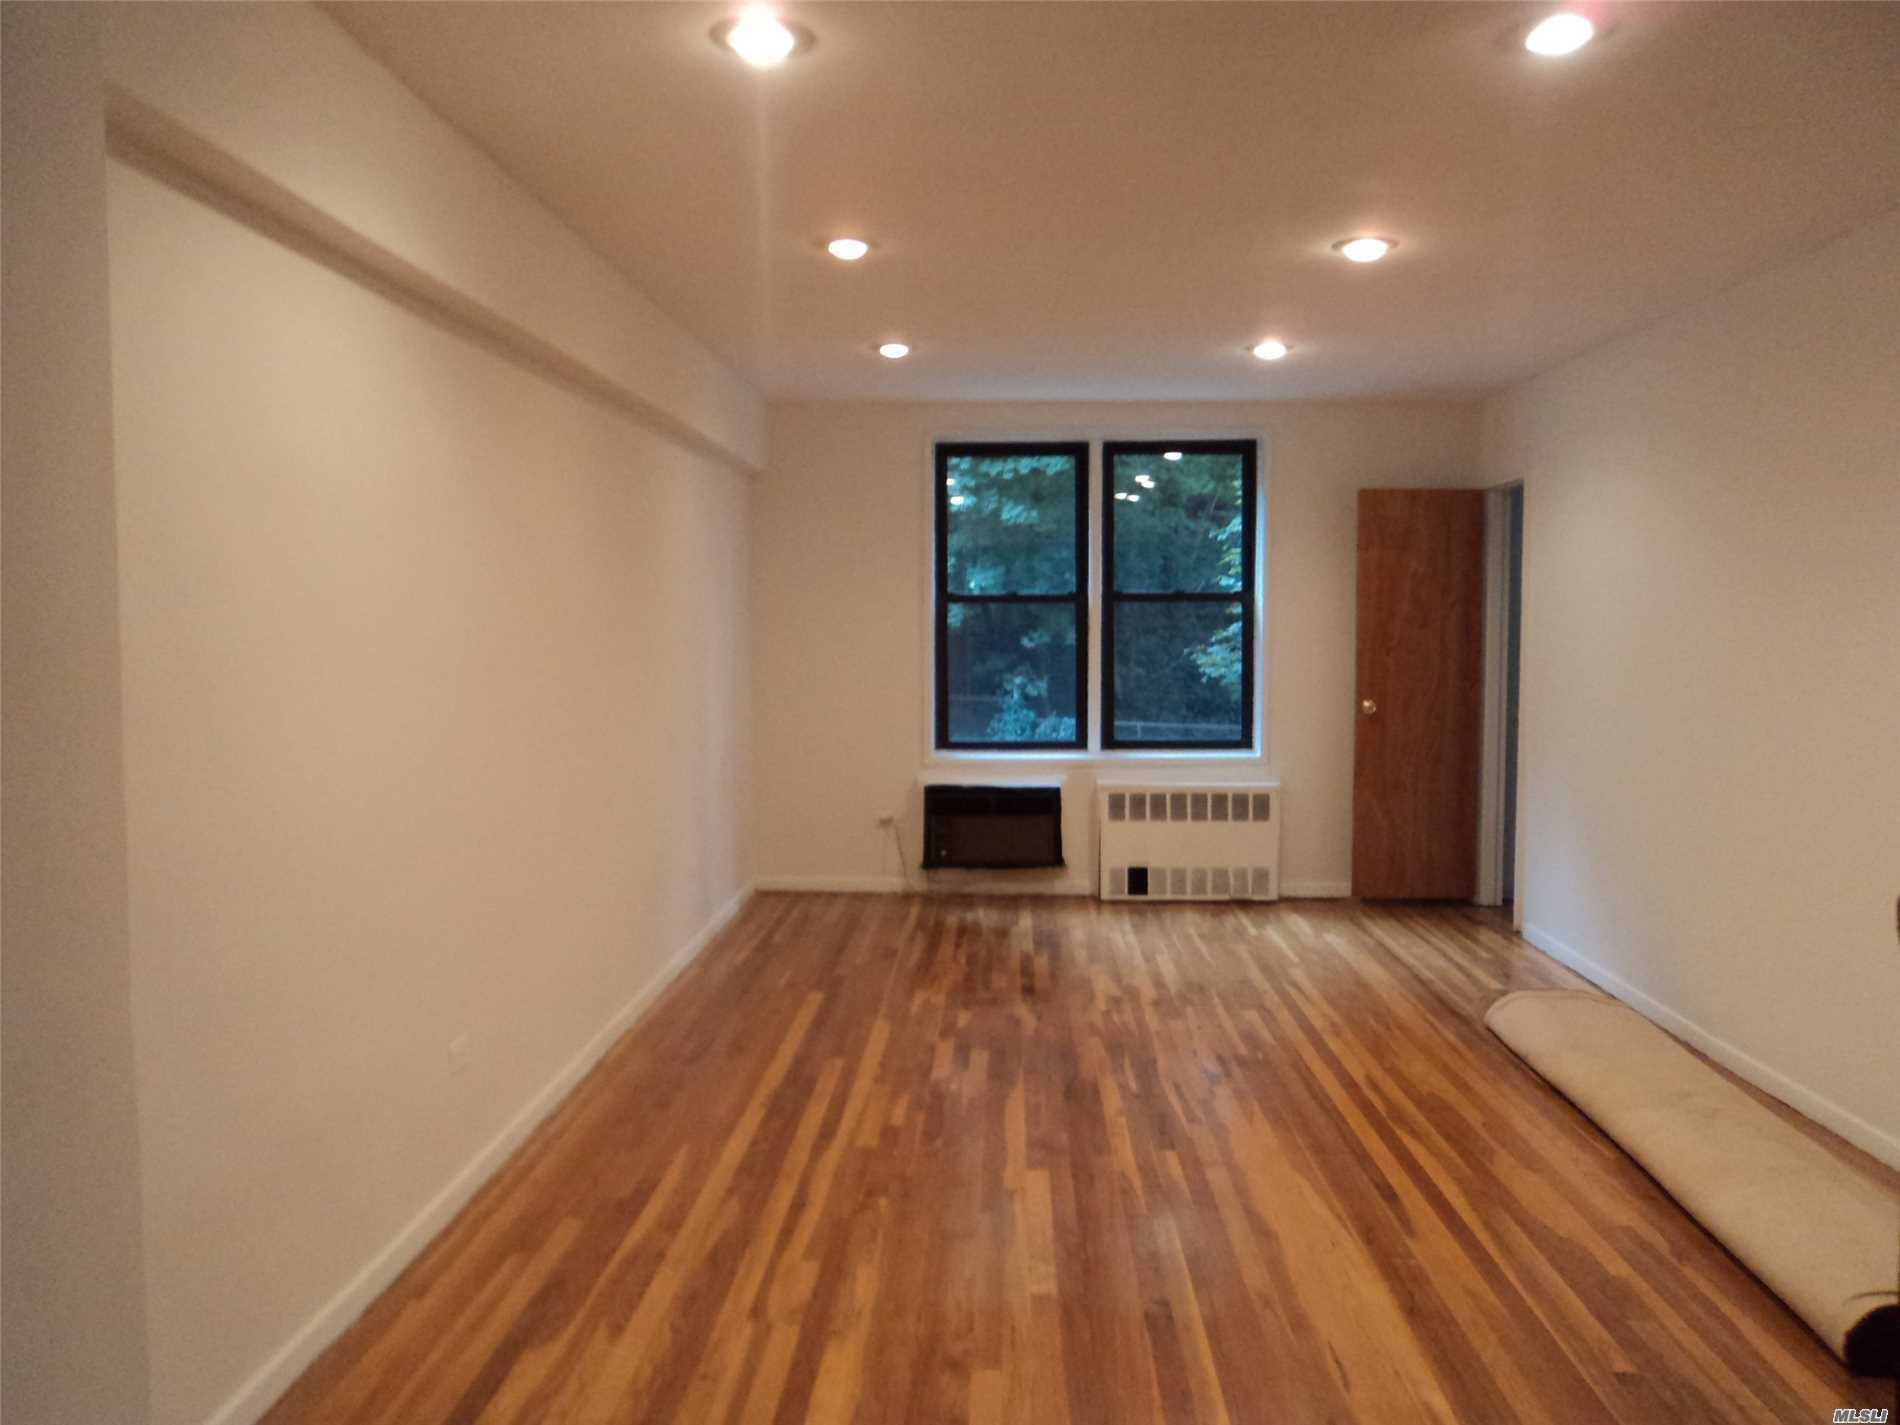 Jr. 4 With Large Living Rm, Dining Area, Kitchen With New Appliances . Hardwood Flrs Throughout. Large Master Bdrm, Sm Bdrm Or Office. Newly Painted, One Block From Lirr And Buses. Convenient To All Ps 98 , Jr Hs 67 And Cardoza Hs.. Sublet After 2 Years.